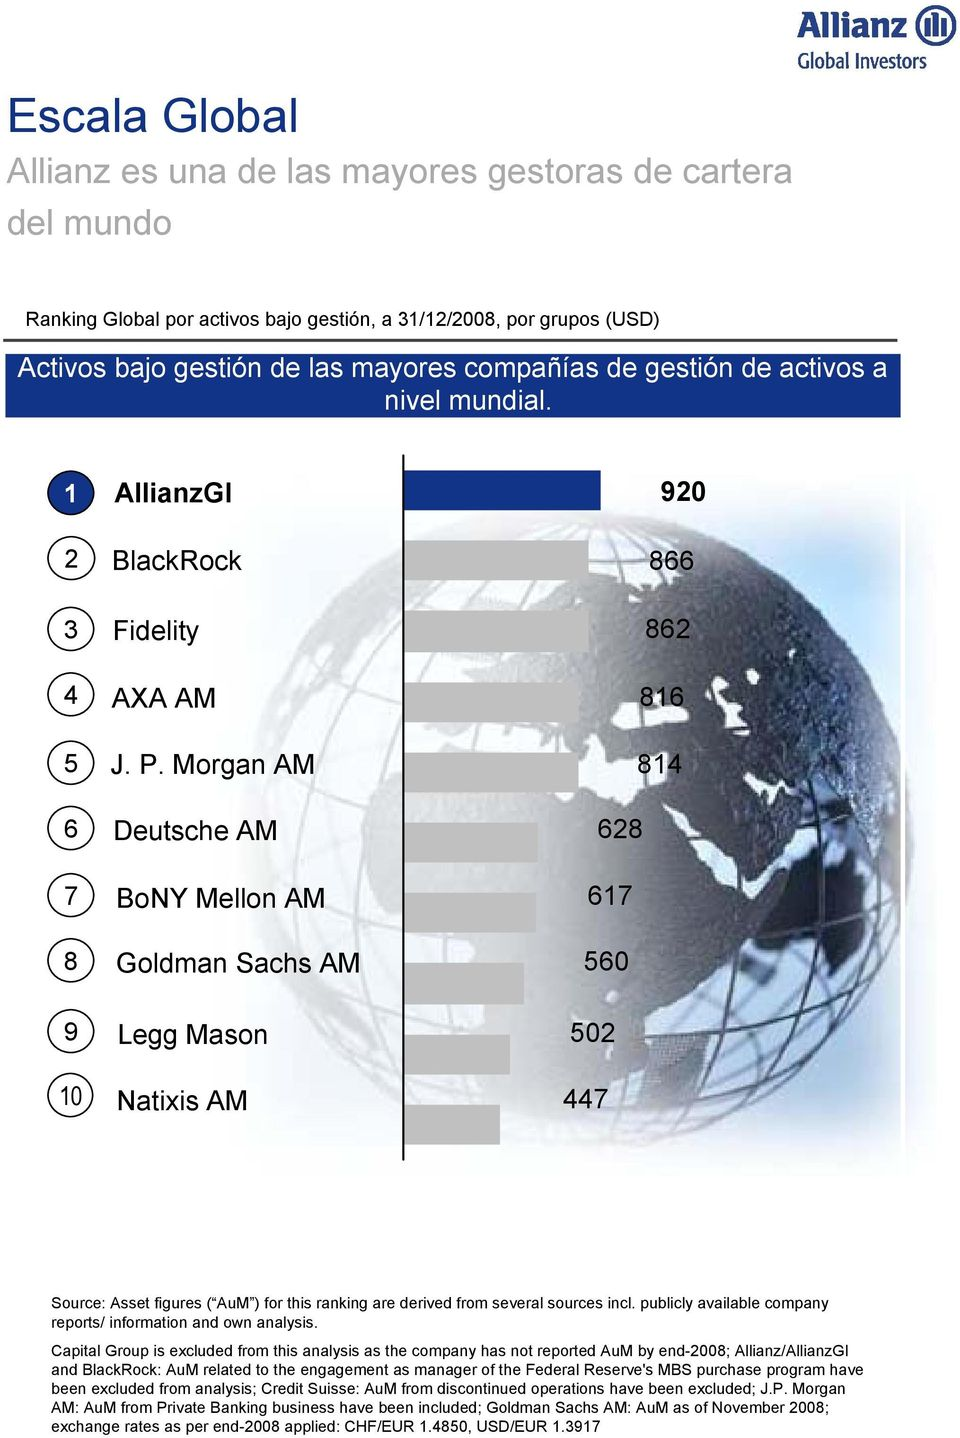 Morgan AM Deutsche AM BoNY Mellon AM Goldman Sachs AM 862 816 814 628 617 560 9 10 Legg Mason Natixis AM 502 447 Source: Asset figures ( AuM ) for this ranking are derived from several sources incl.